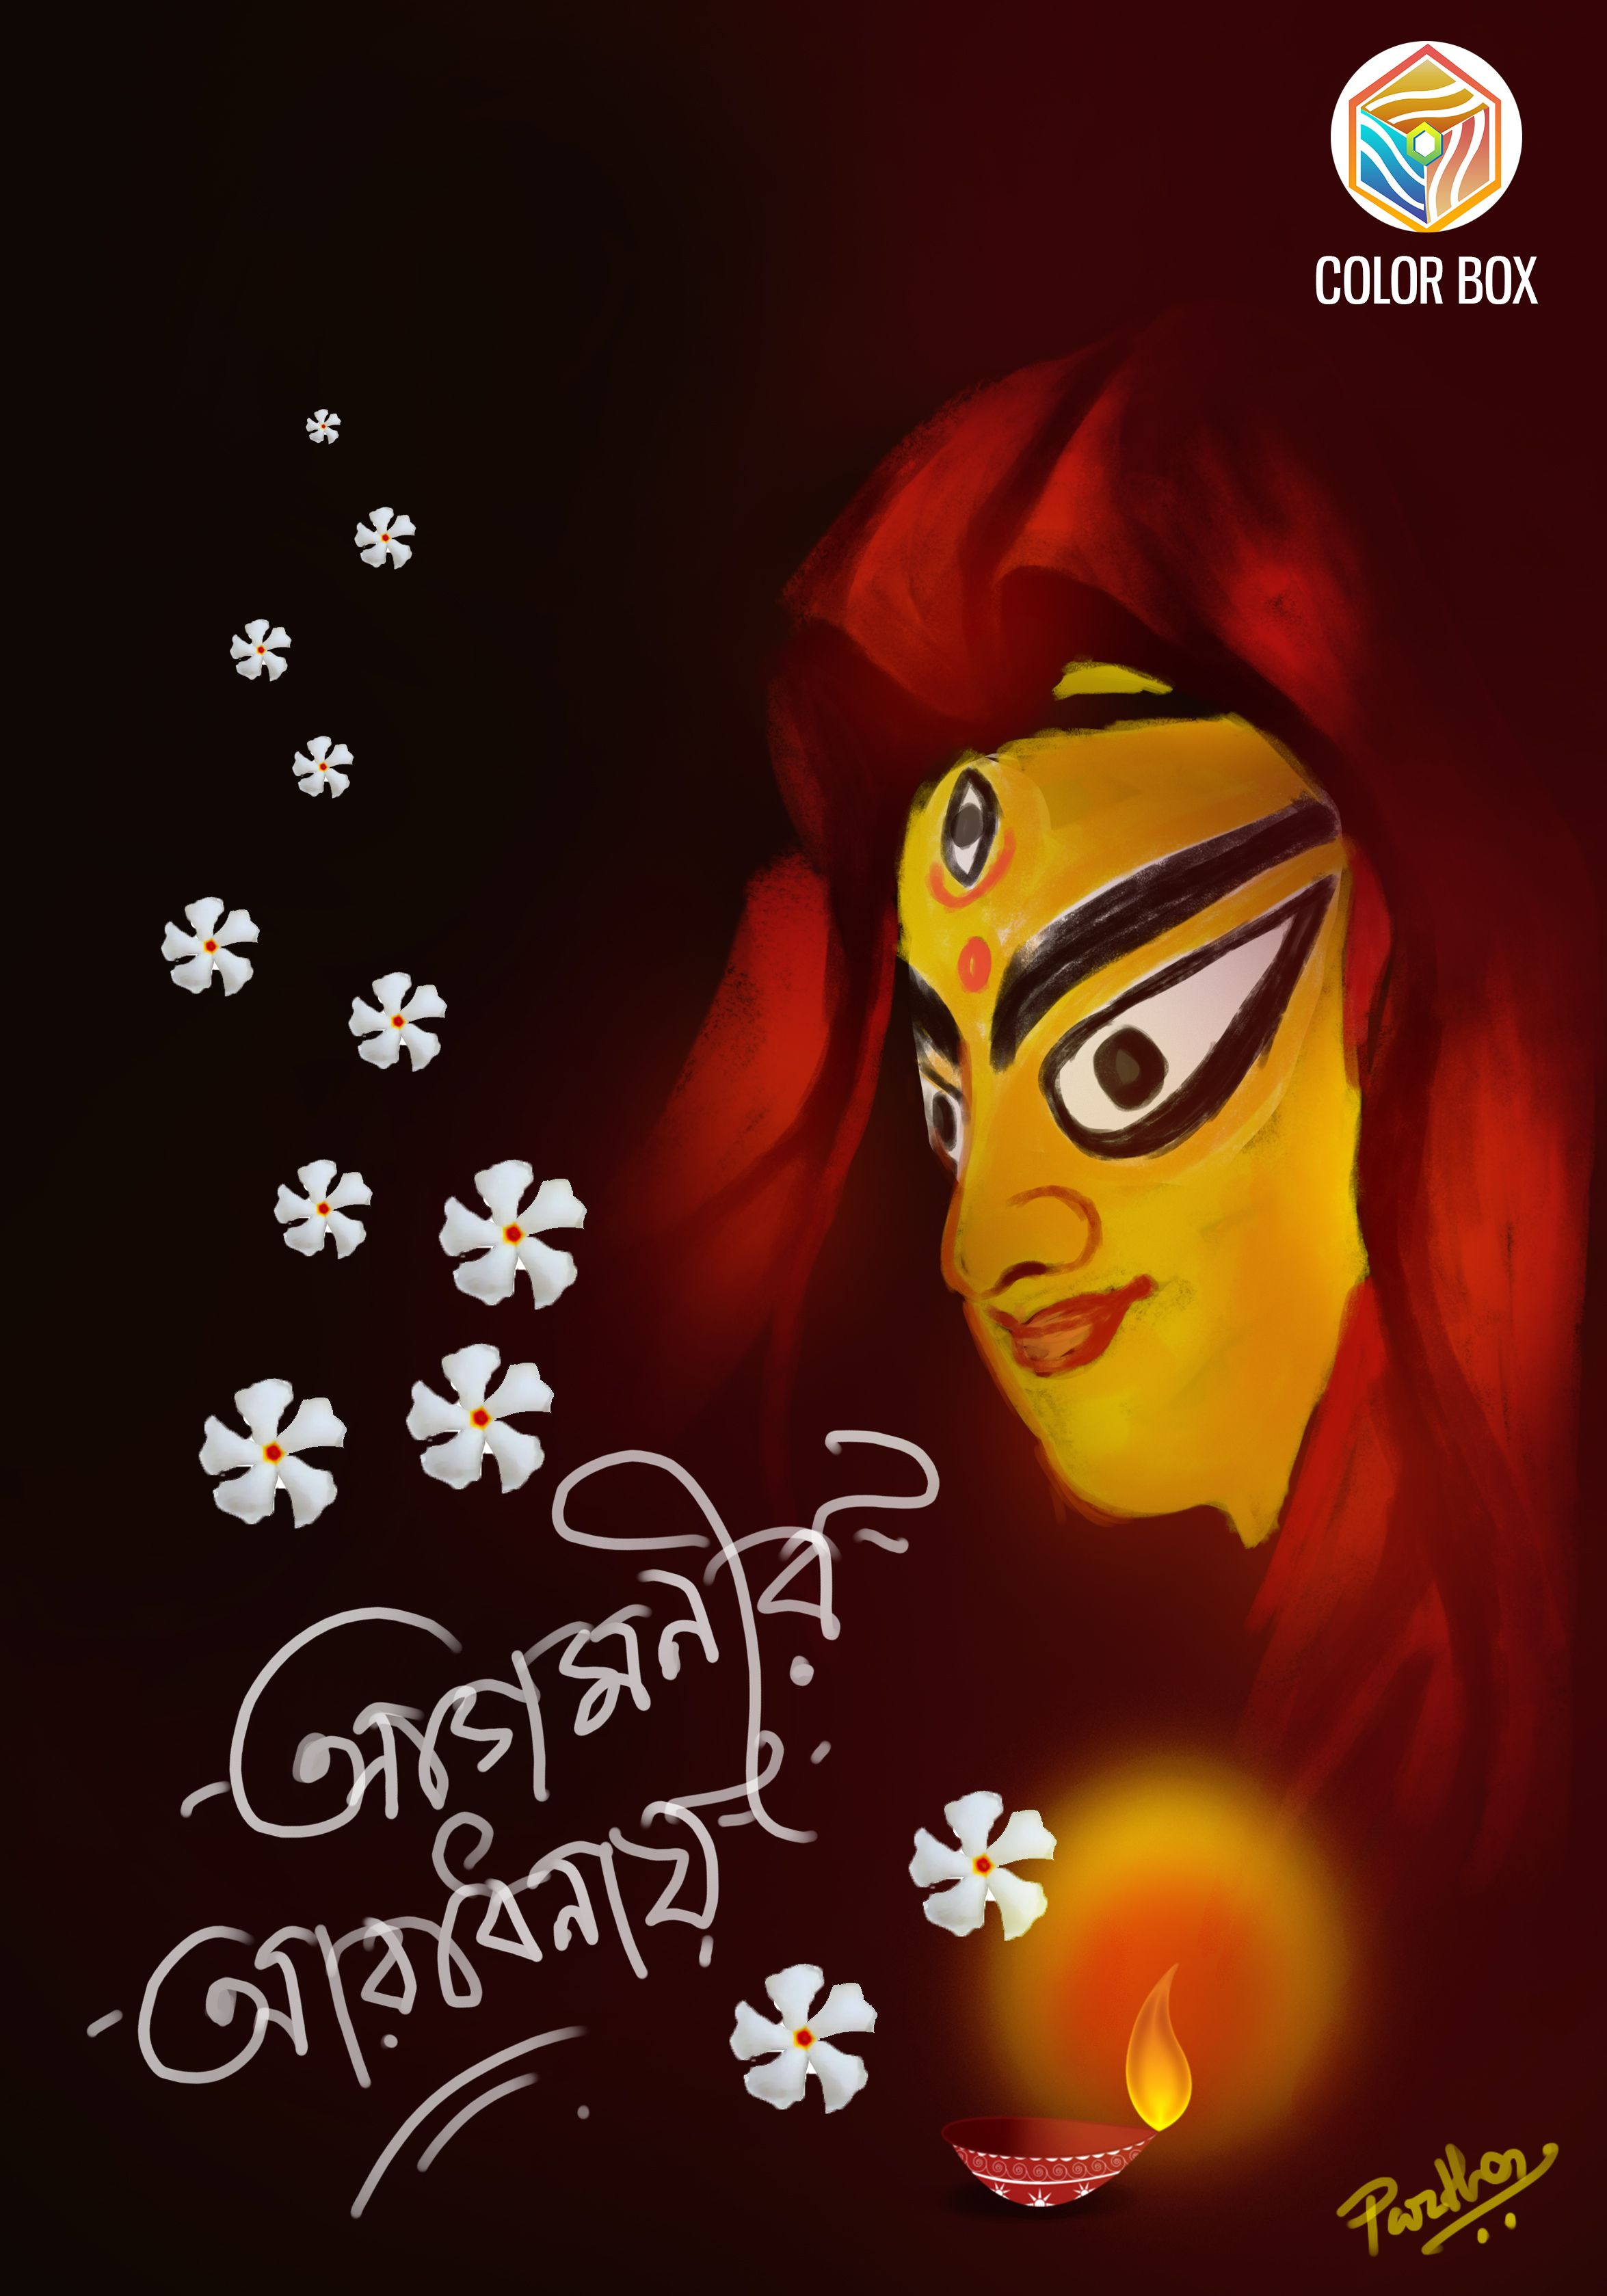 subho mahalaya Color box, Poster, Art